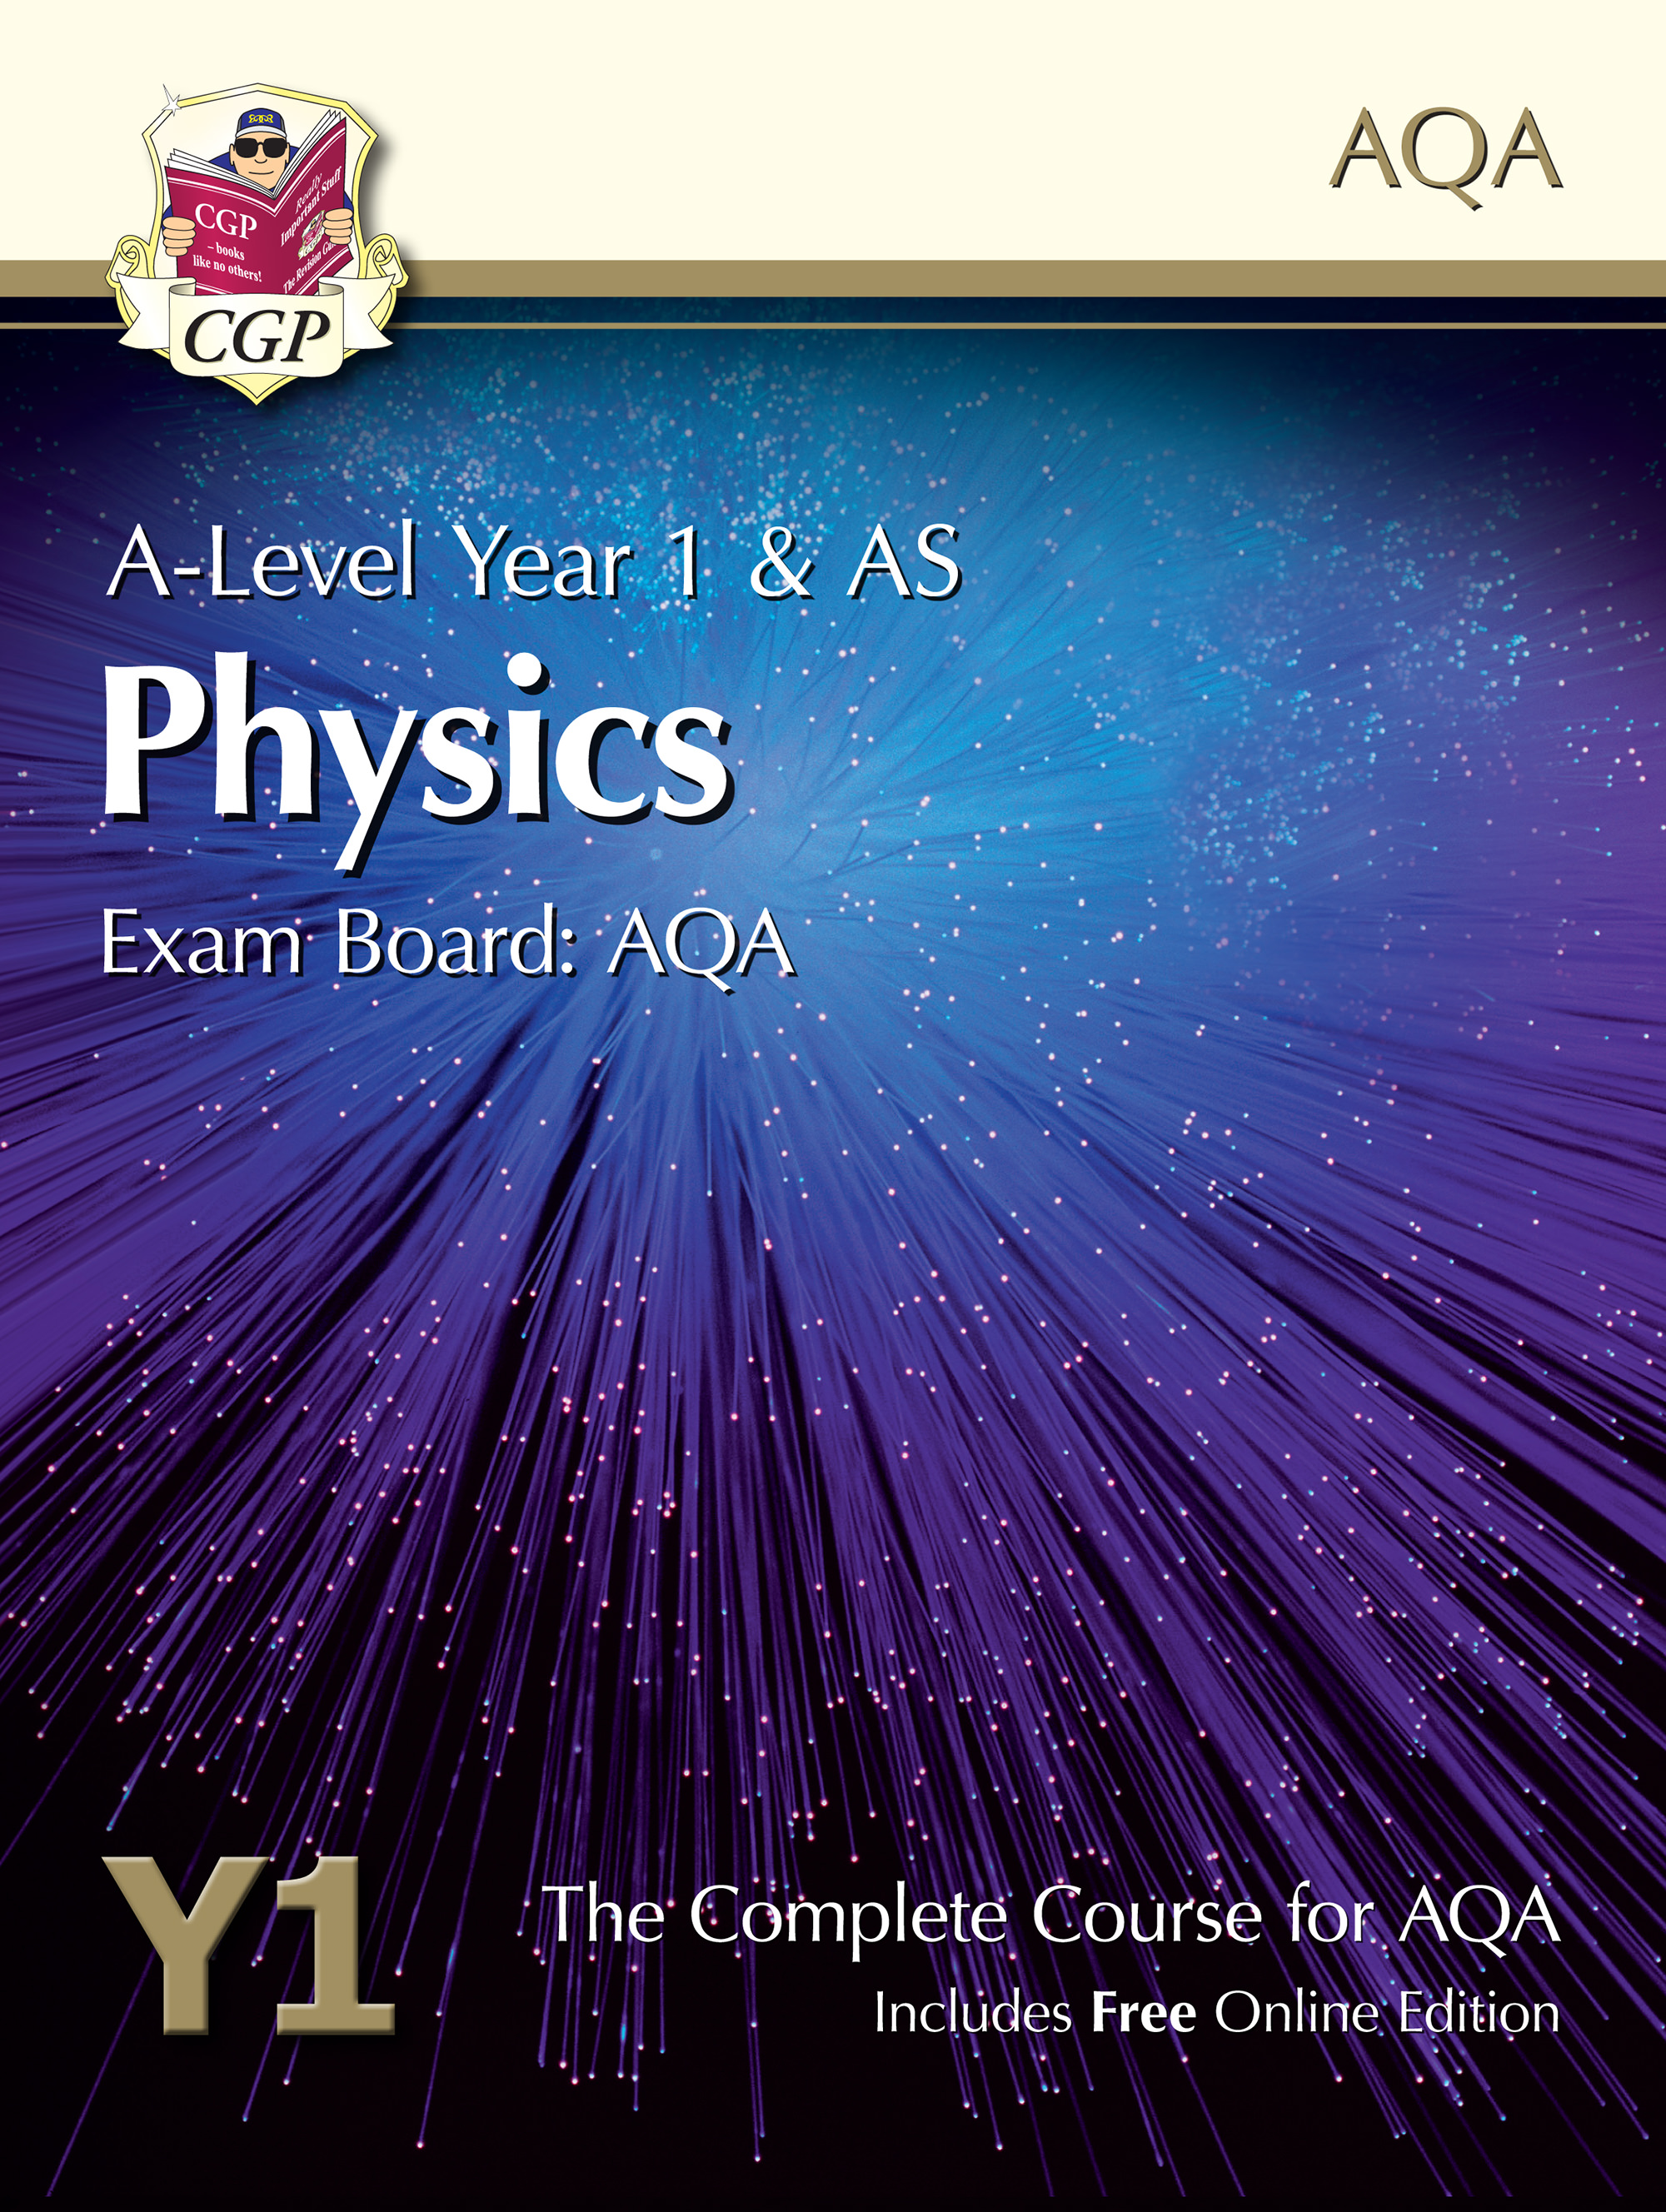 PATB52 - A-Level Physics for AQA: Year 1 & AS Student Book with Online Edition